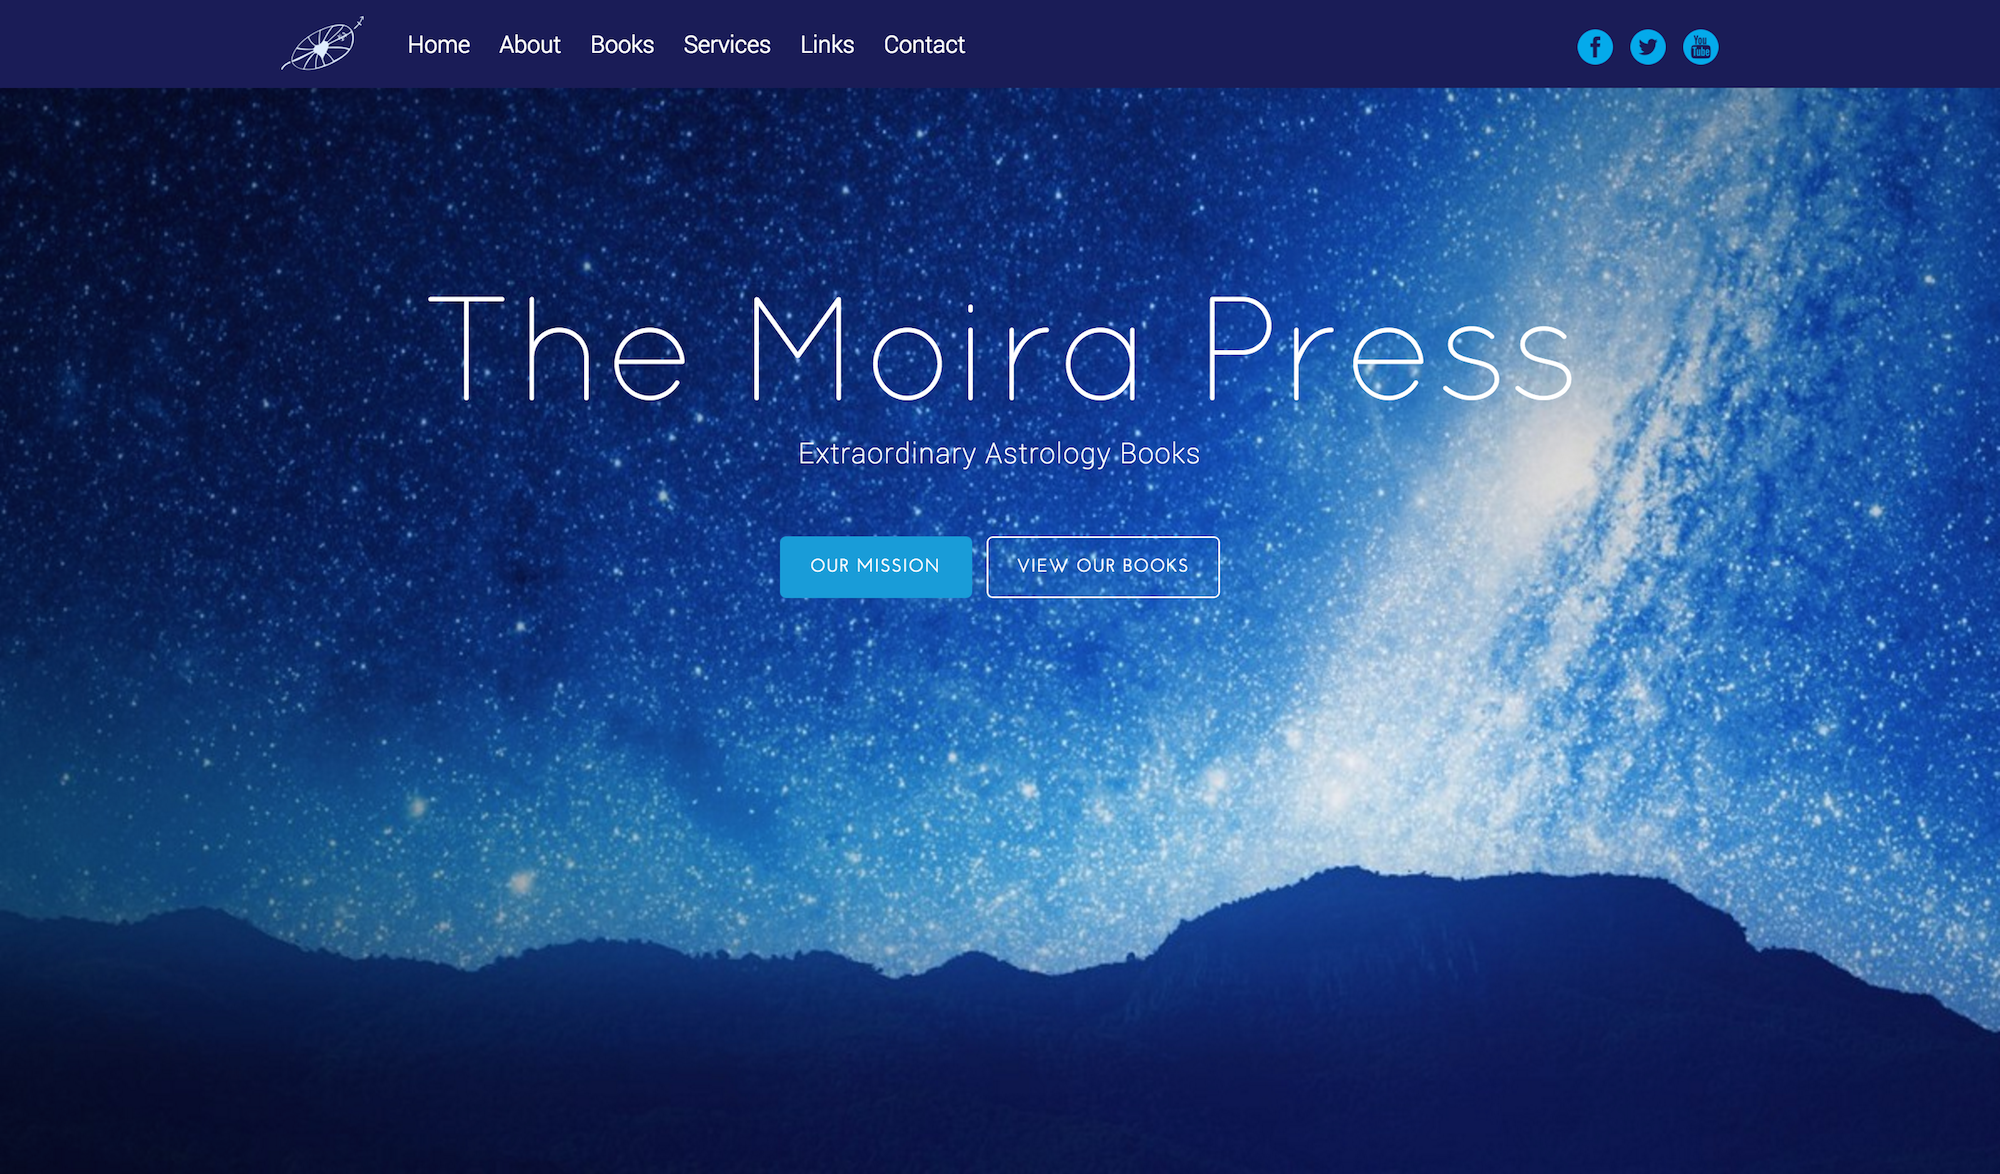 Home – The Moira Press